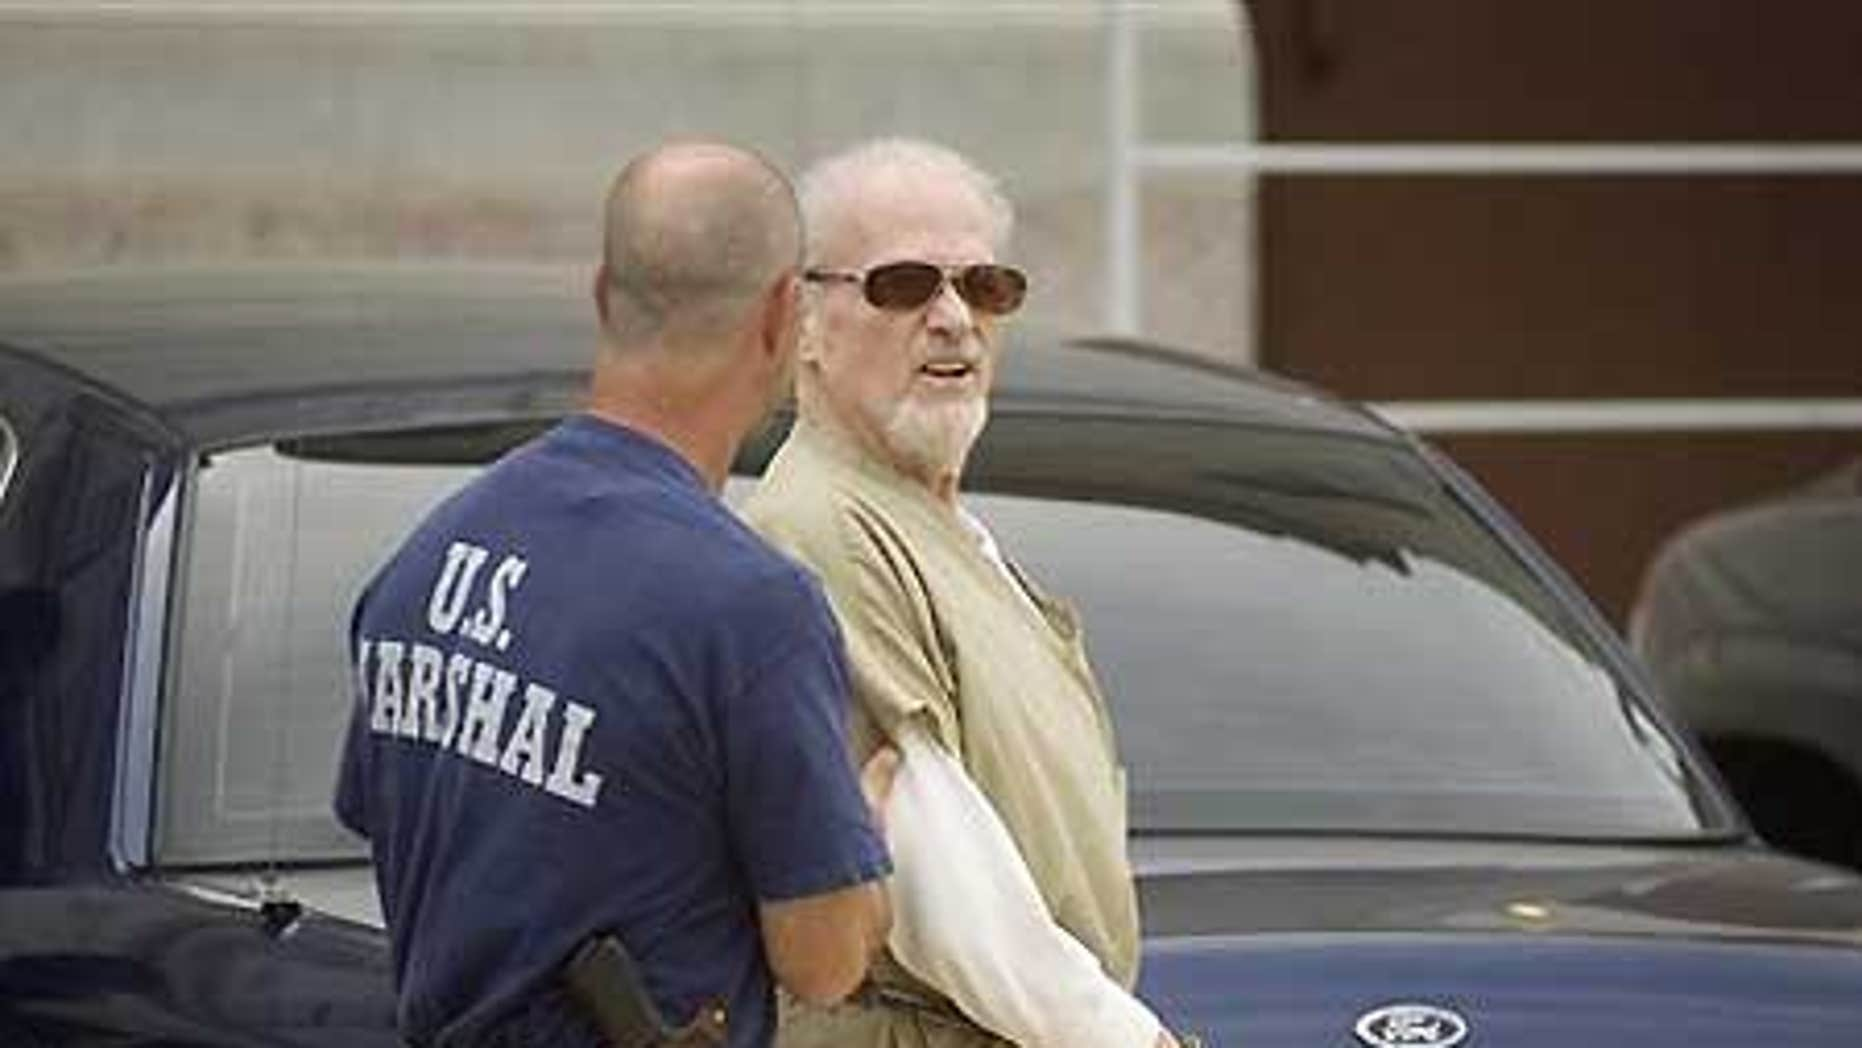 July 14: Evangelist Tony Alamo is led from the federal courthouse in Texarkana, Ark., following opening statements in his trial.